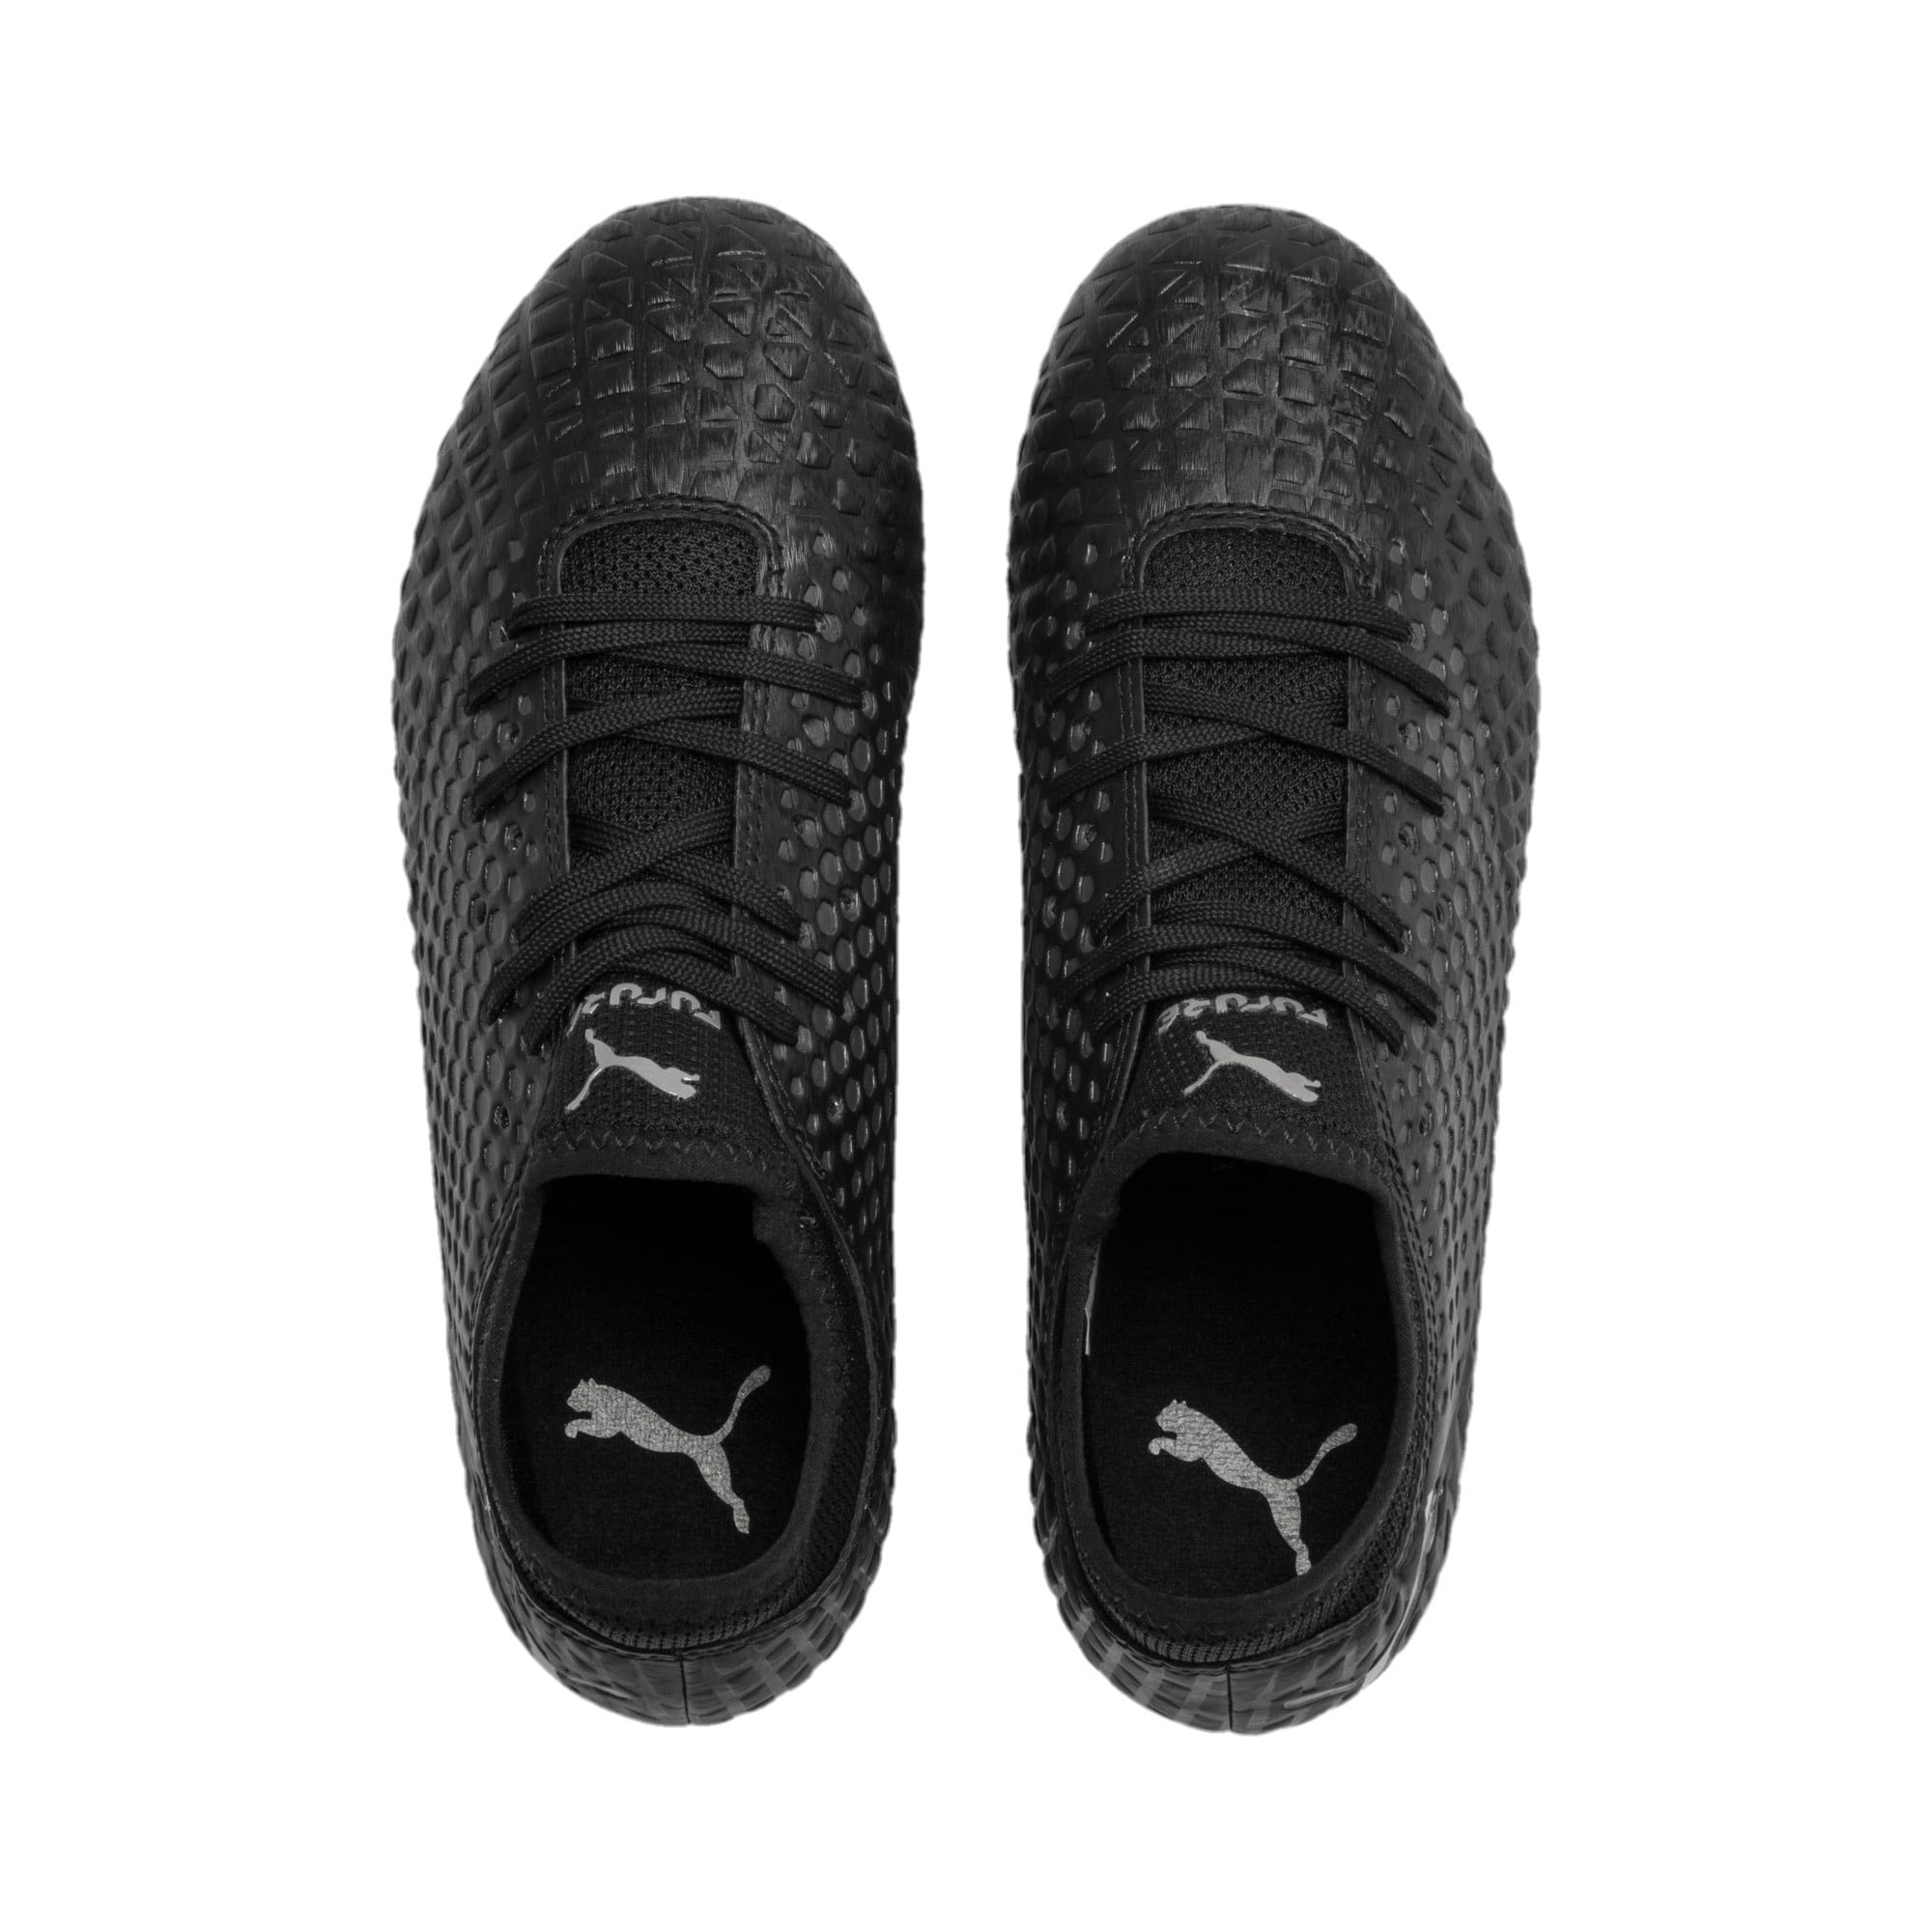 Thumbnail 6 of FUTURE 4.4 FG/AG Youth Fußballschuhe, Black-Black-Puma Aged Silver, medium